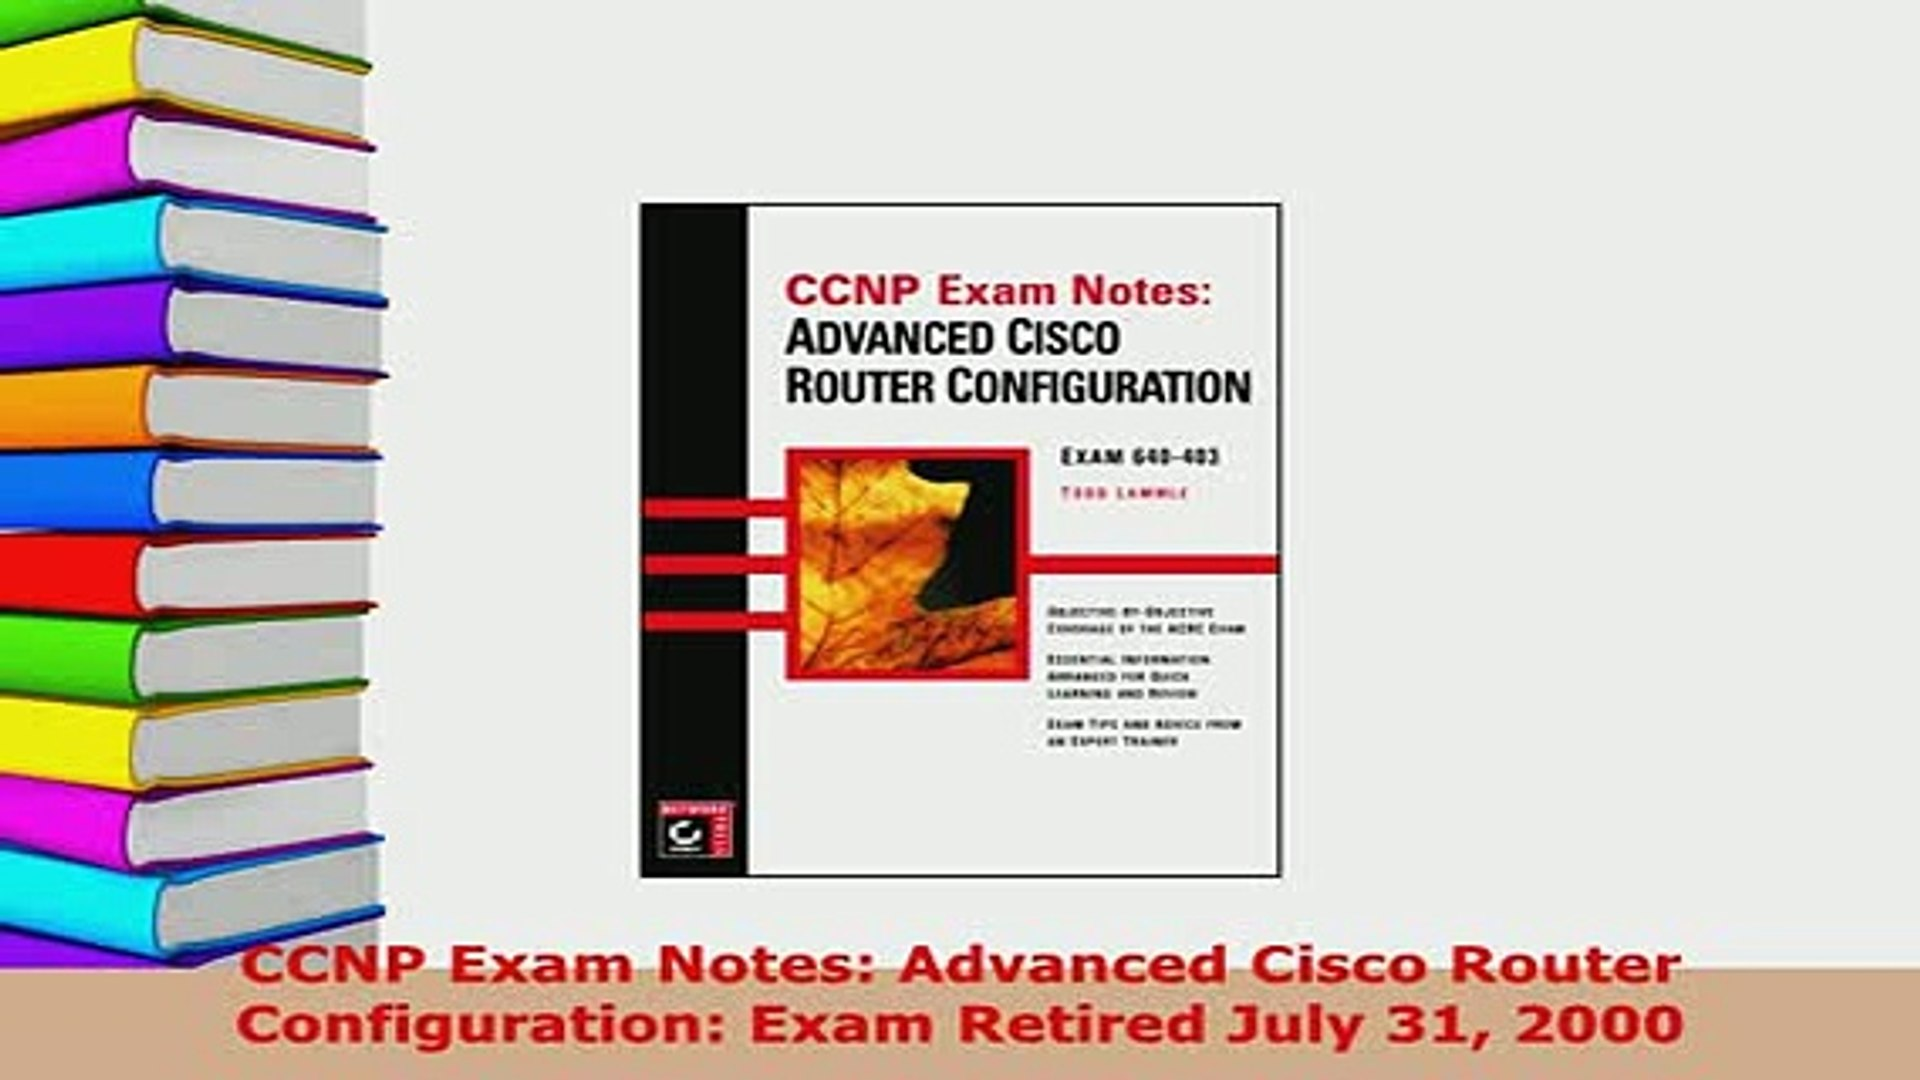 Exam Retired July 31 CCNP 2000 Advanced Cisco Router